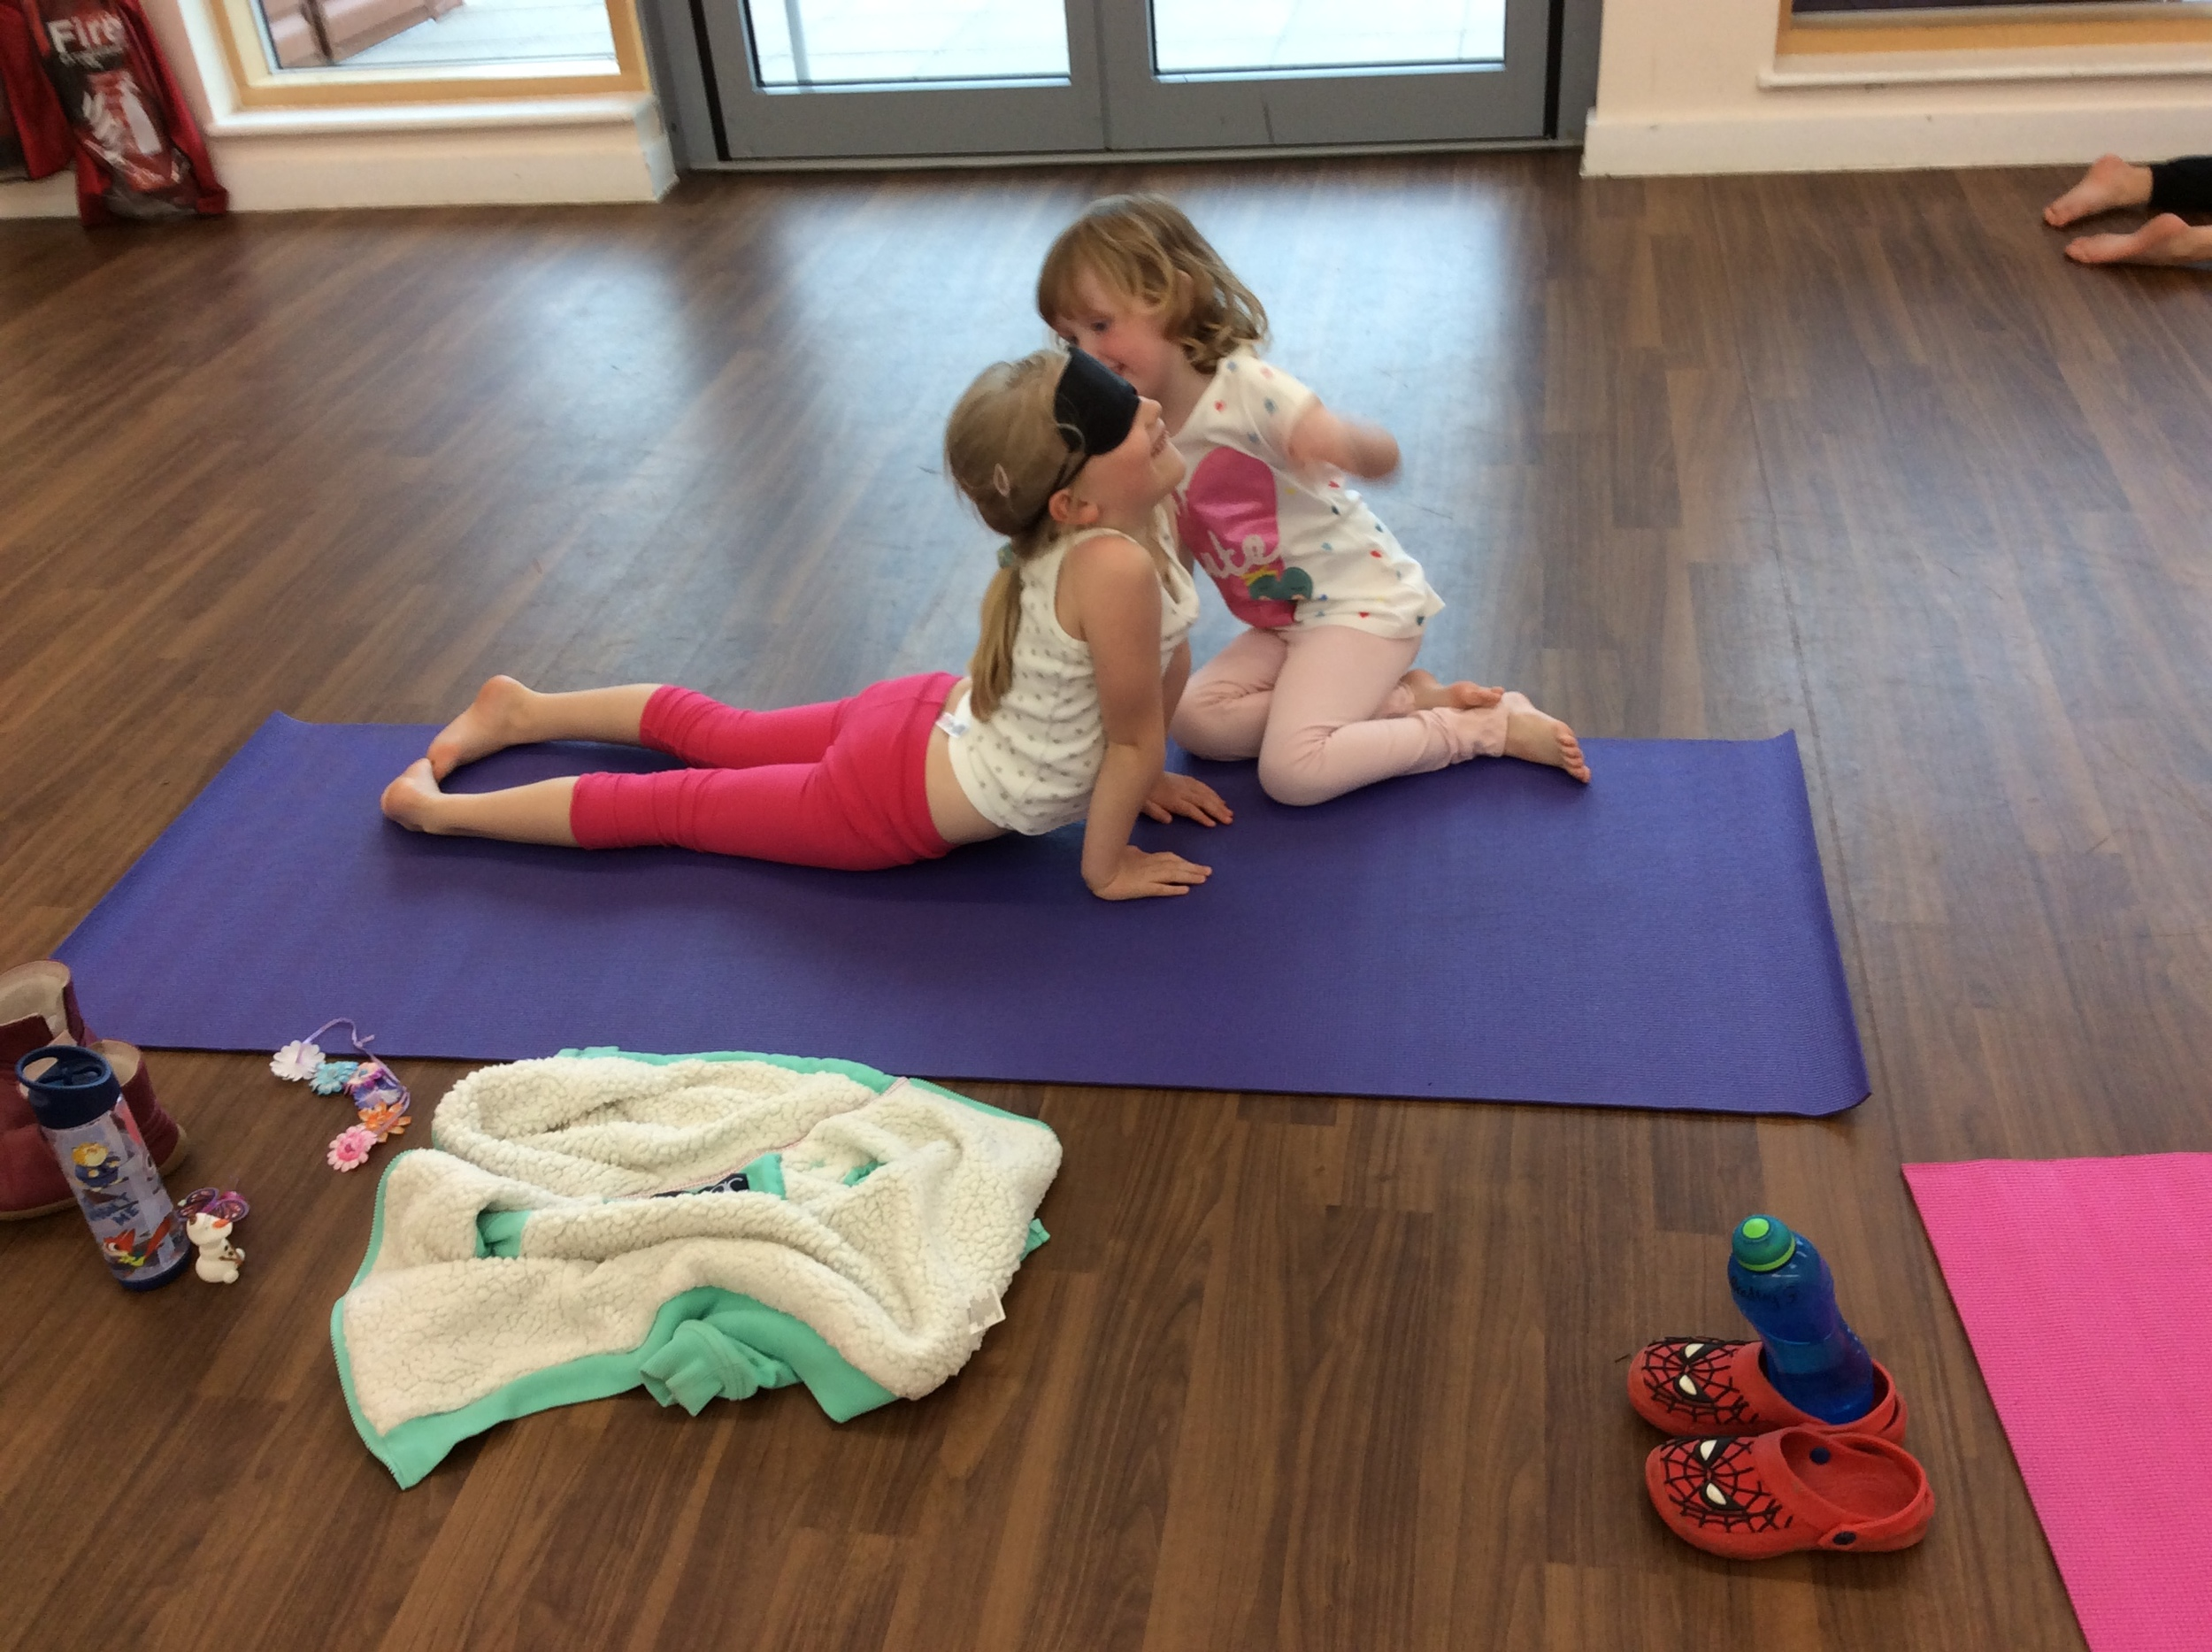 Wearing blindfolds in yoga has been challenging but very fun! We put a blind fold on, Melissa strikes a yoga pose and our partner has to describe the pose to us without telling us what it is!